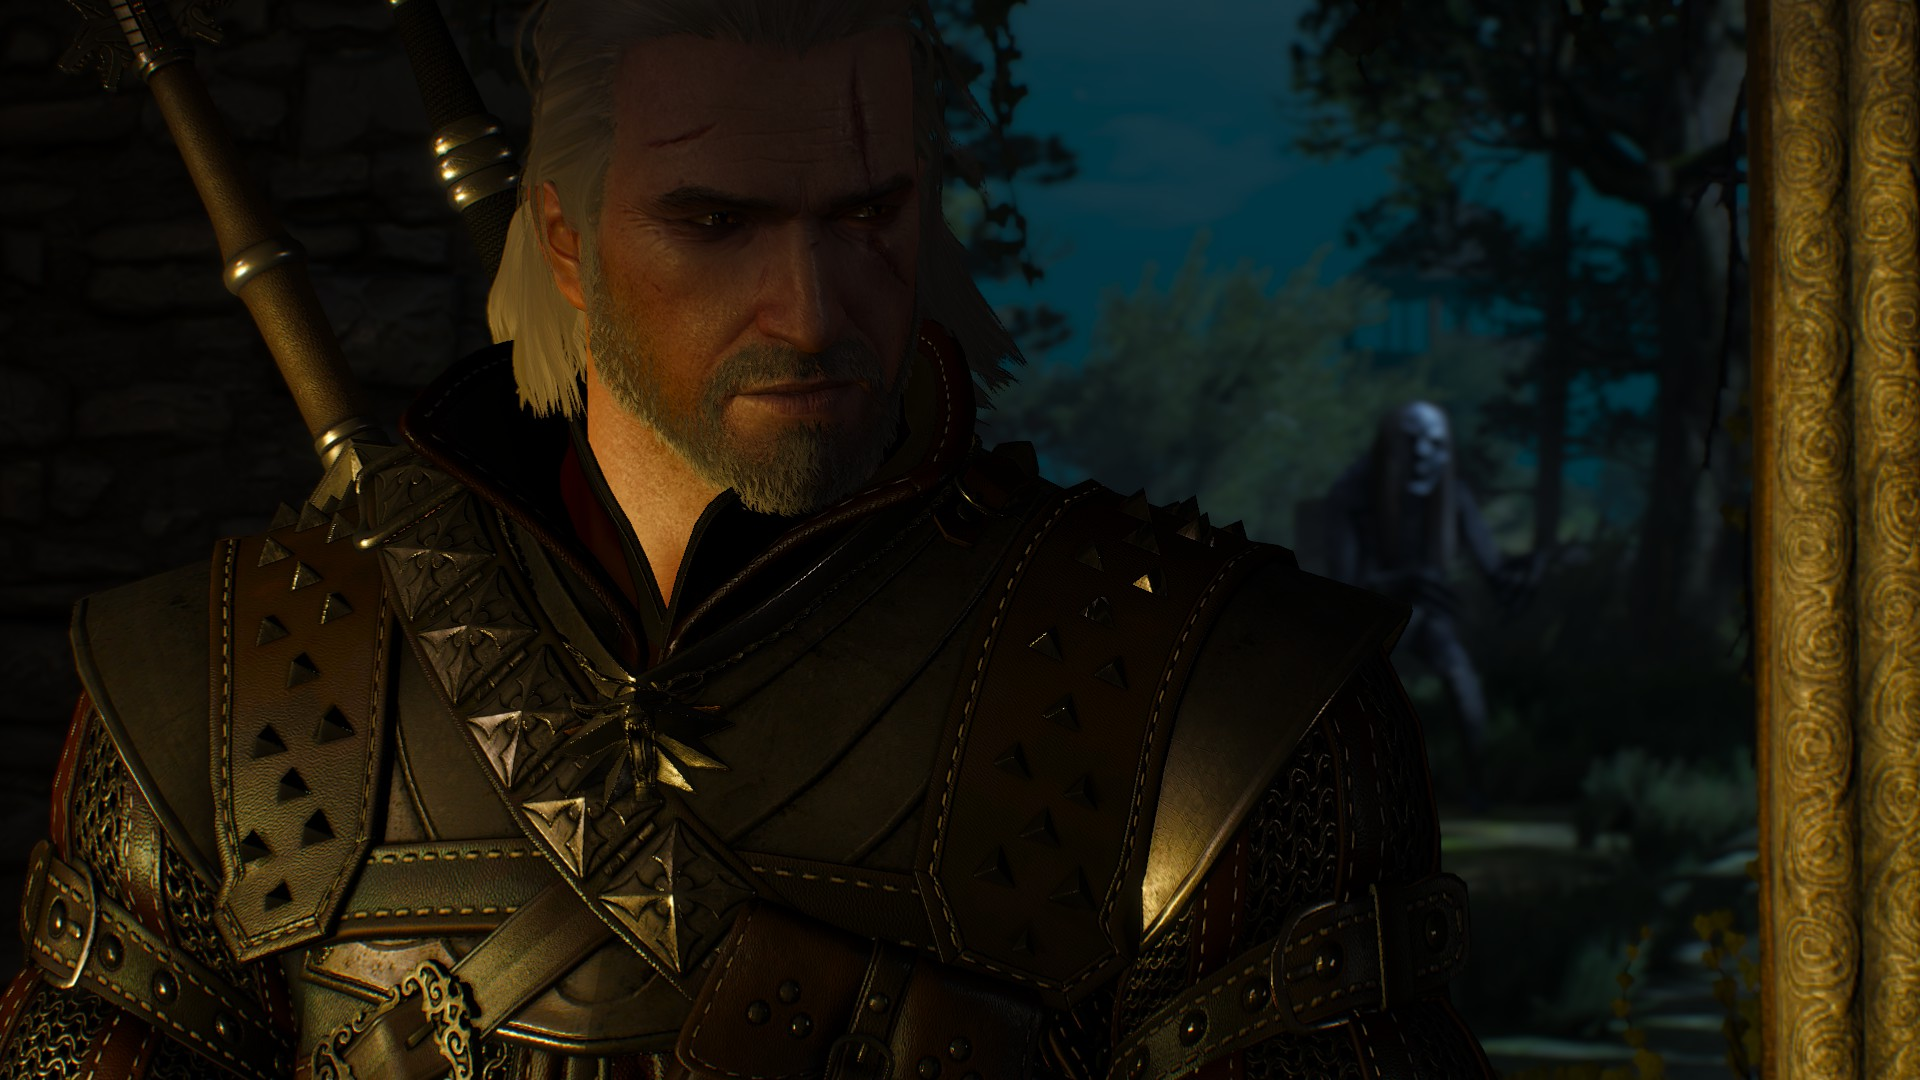 20180926100646_1.jpg - Witcher 3: Wild Hunt, the